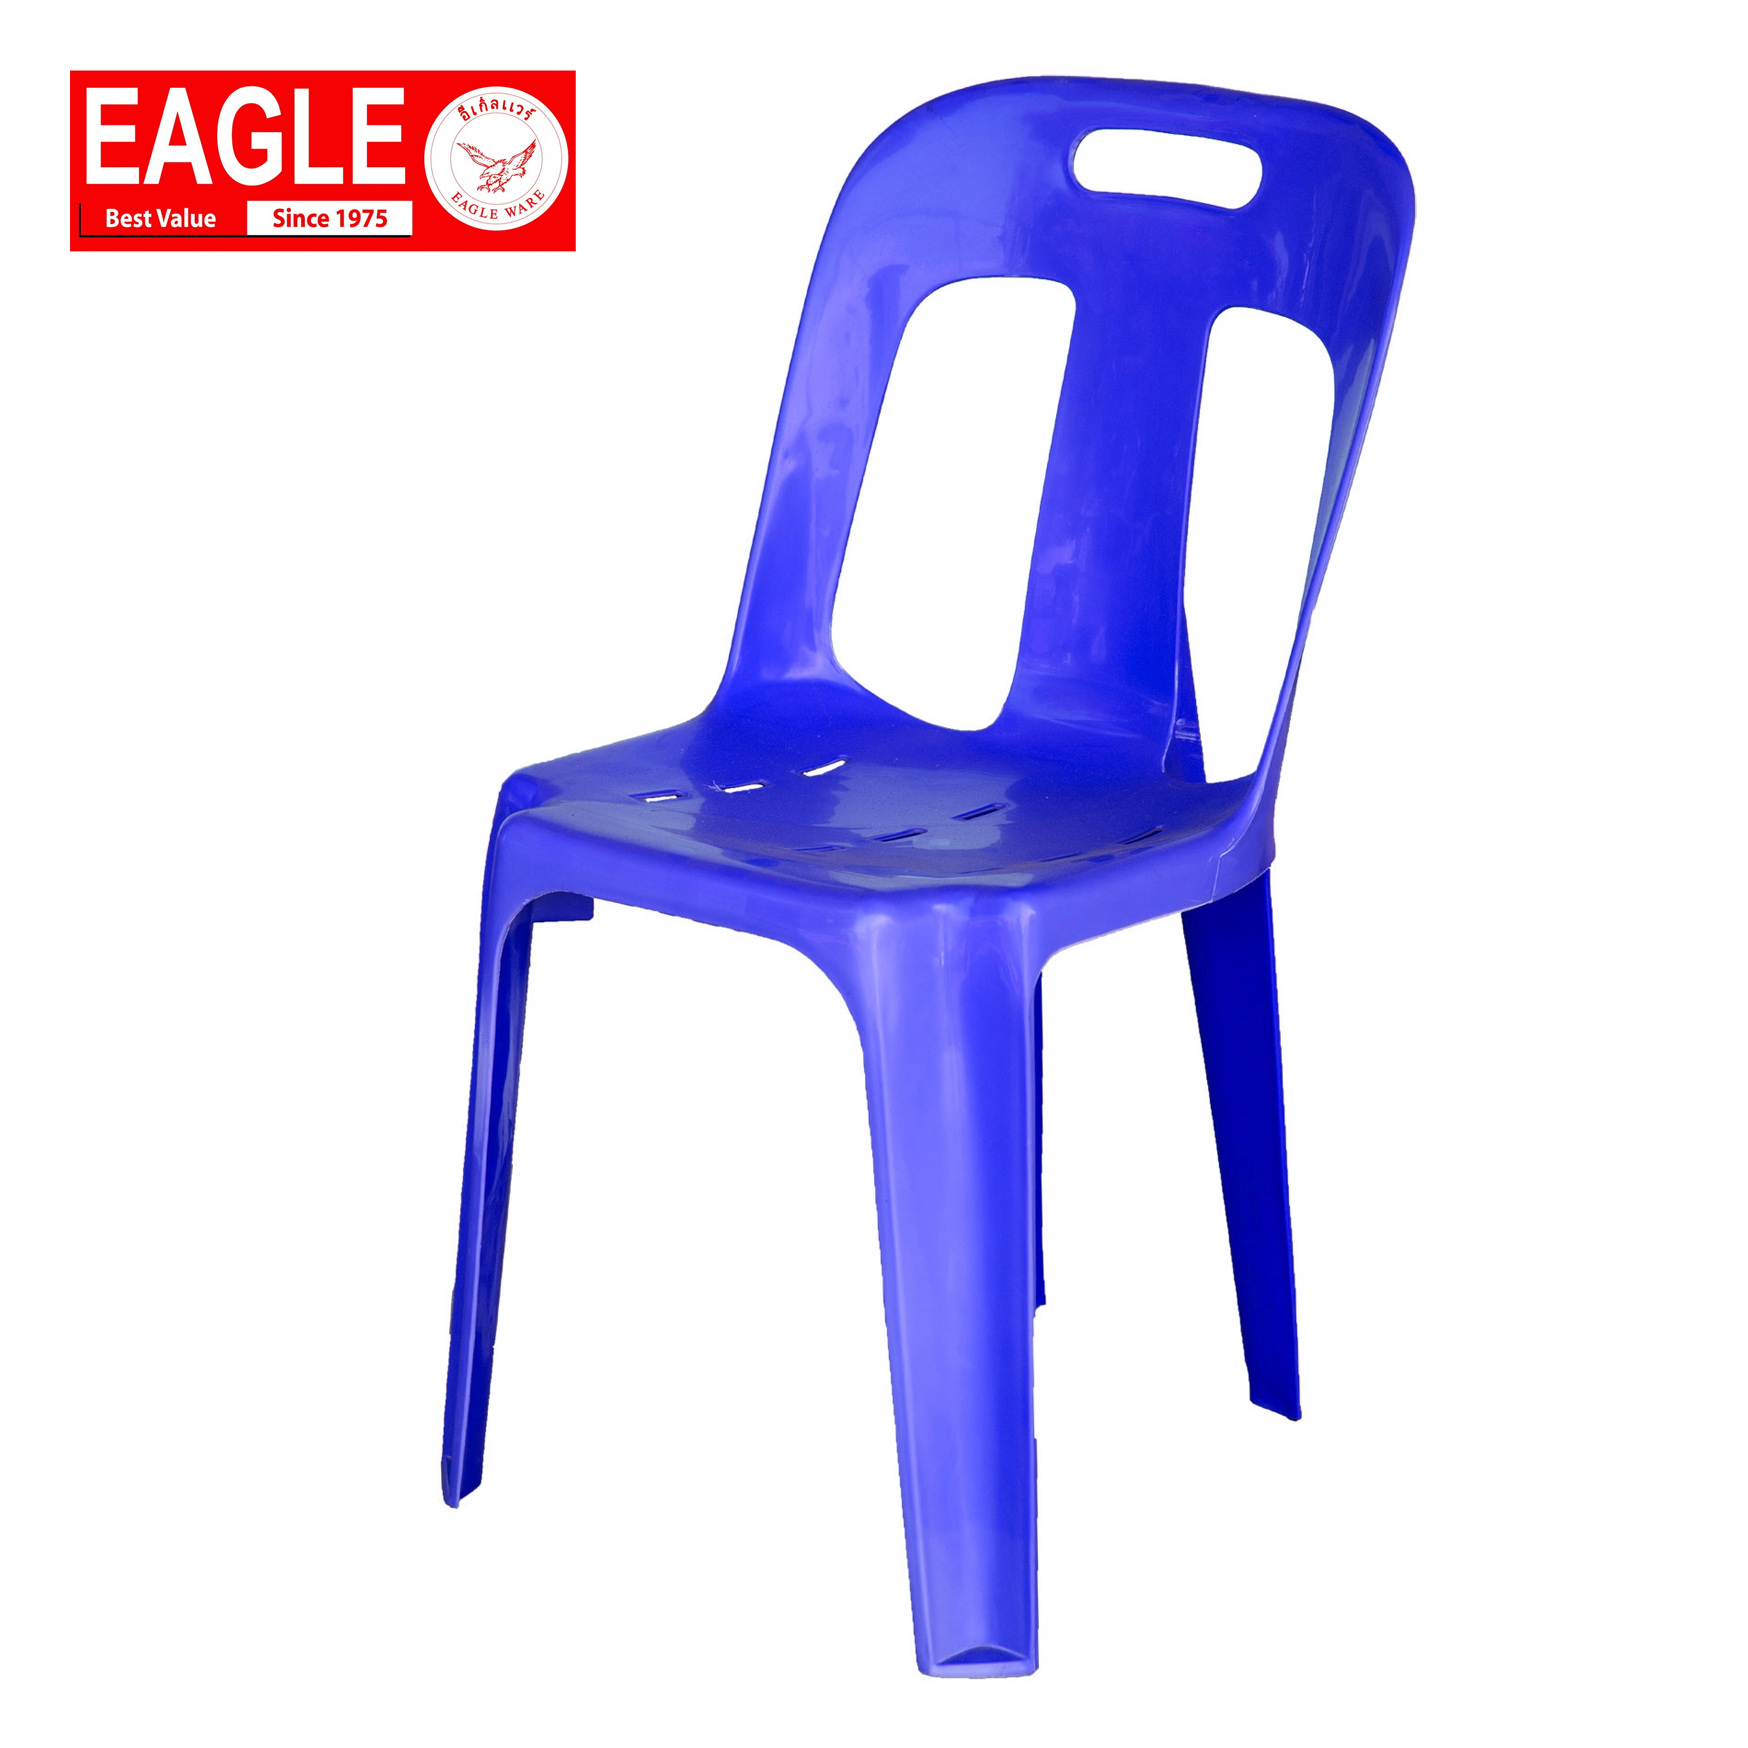 eagle chair blue.jpg